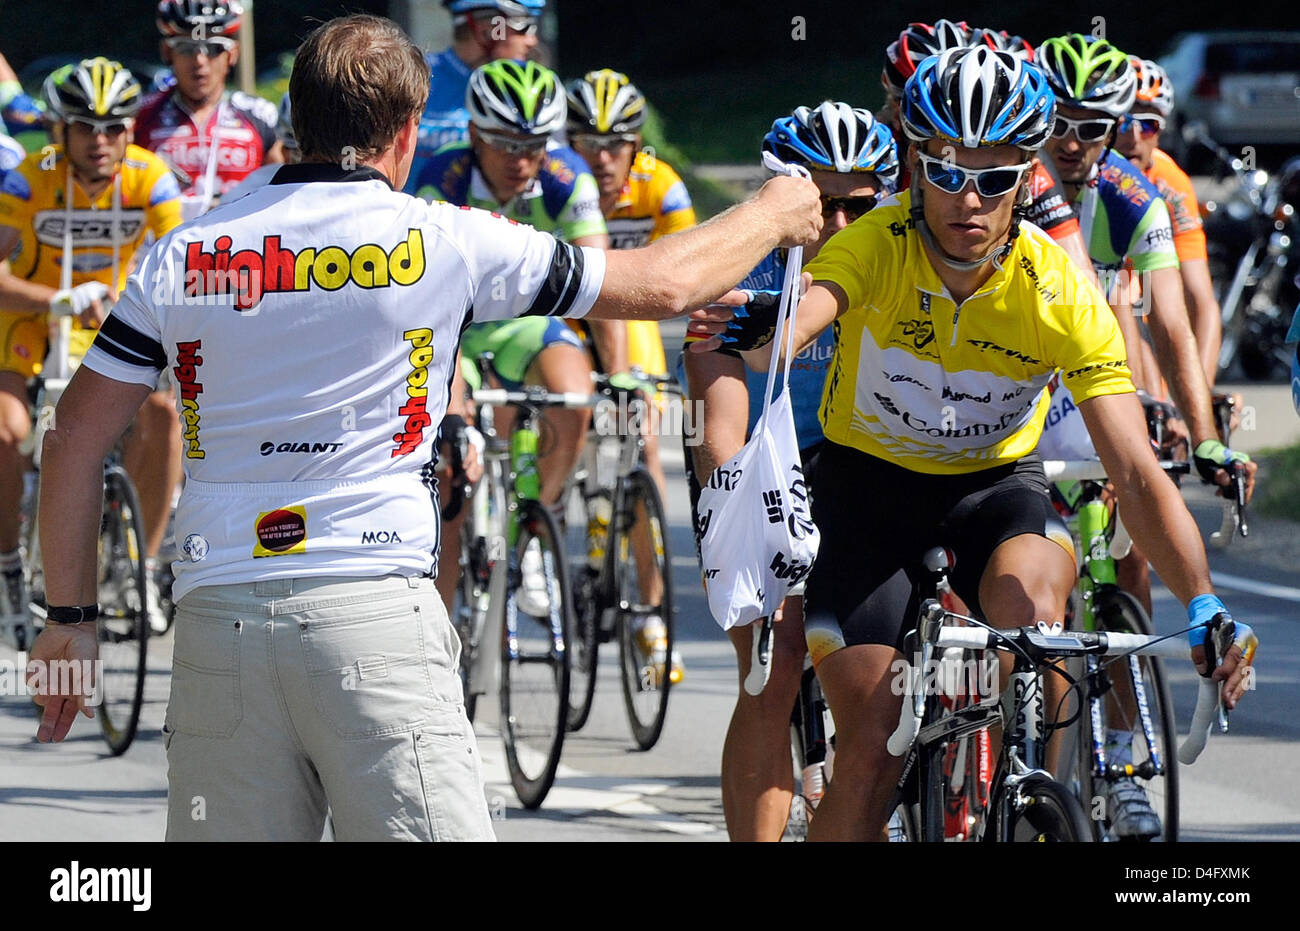 b610f052090 German cyclist Linus Gerdemann (R) of Team Columbia wears the Yellow jersey  as the overall leader and takes some supplies during the second stage of  the ...